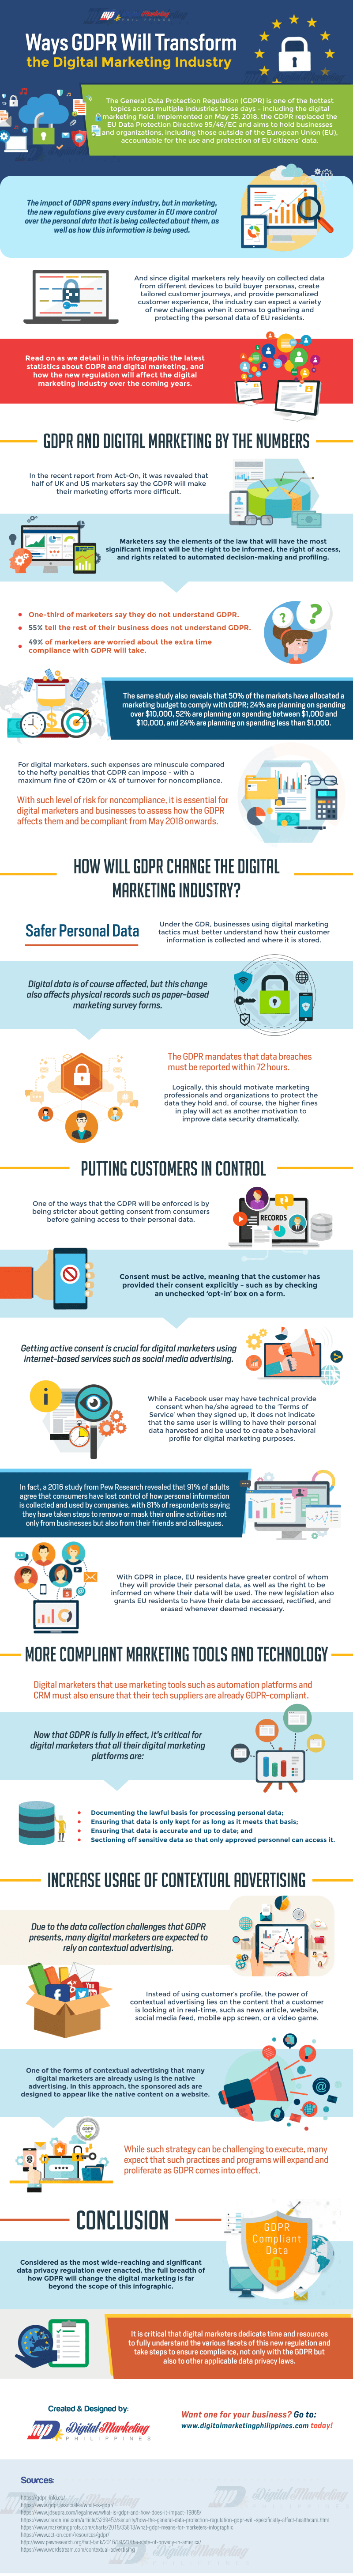 Digital Marketing Philippines - Infographic - How GDPR will transform the digital marketing industry